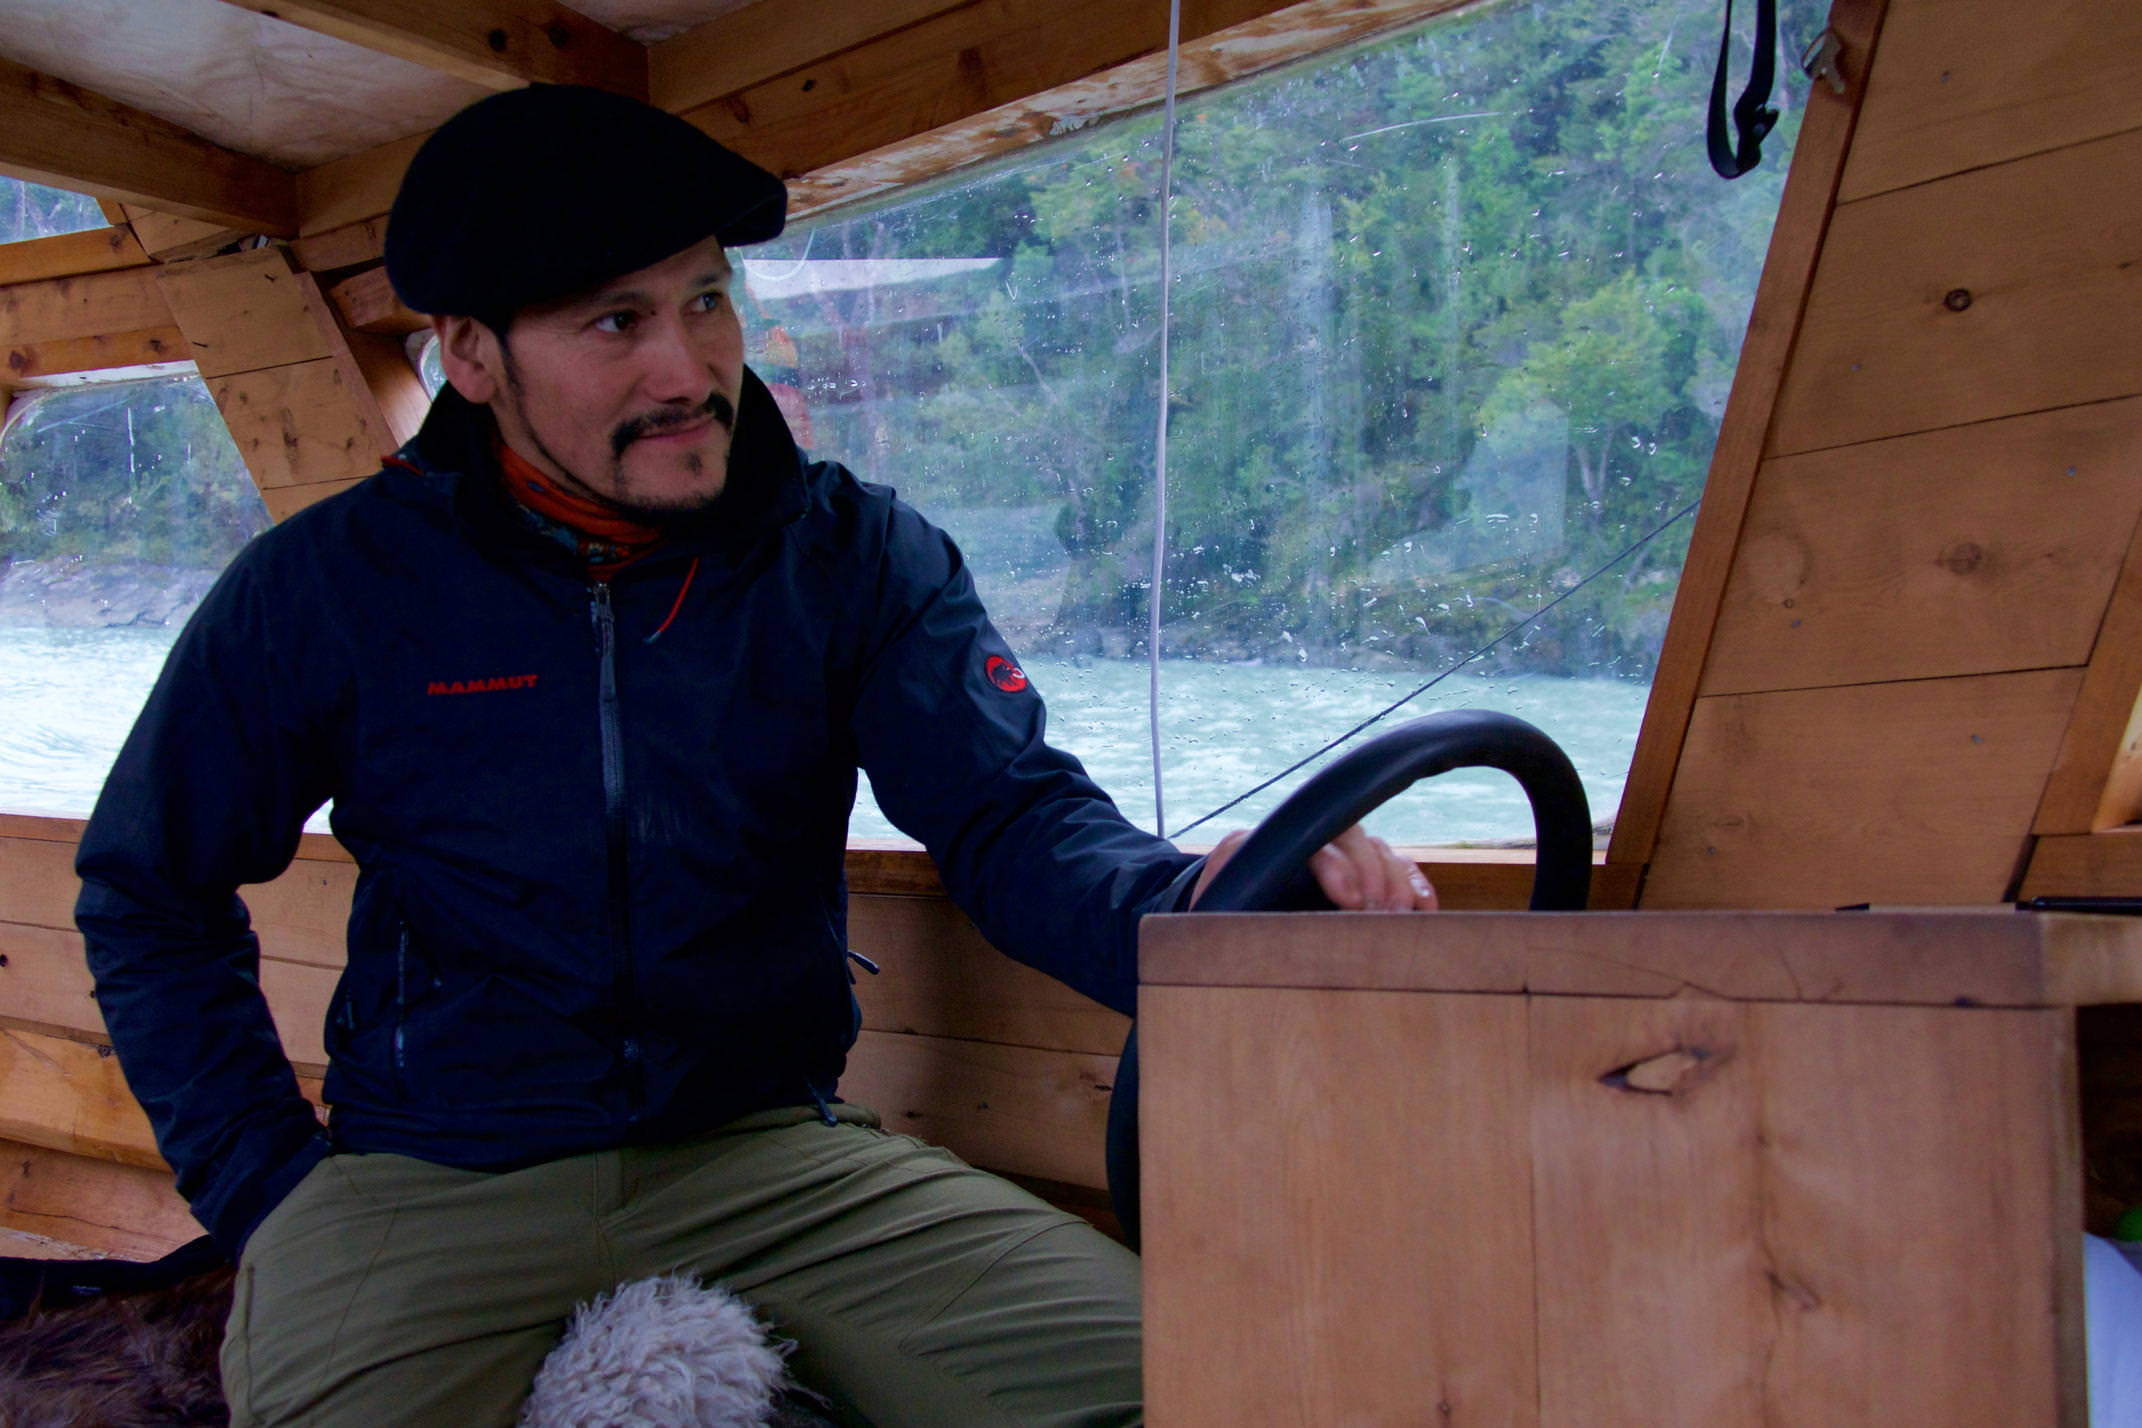 Chile patagonia aysen tortel captain of boat fjords